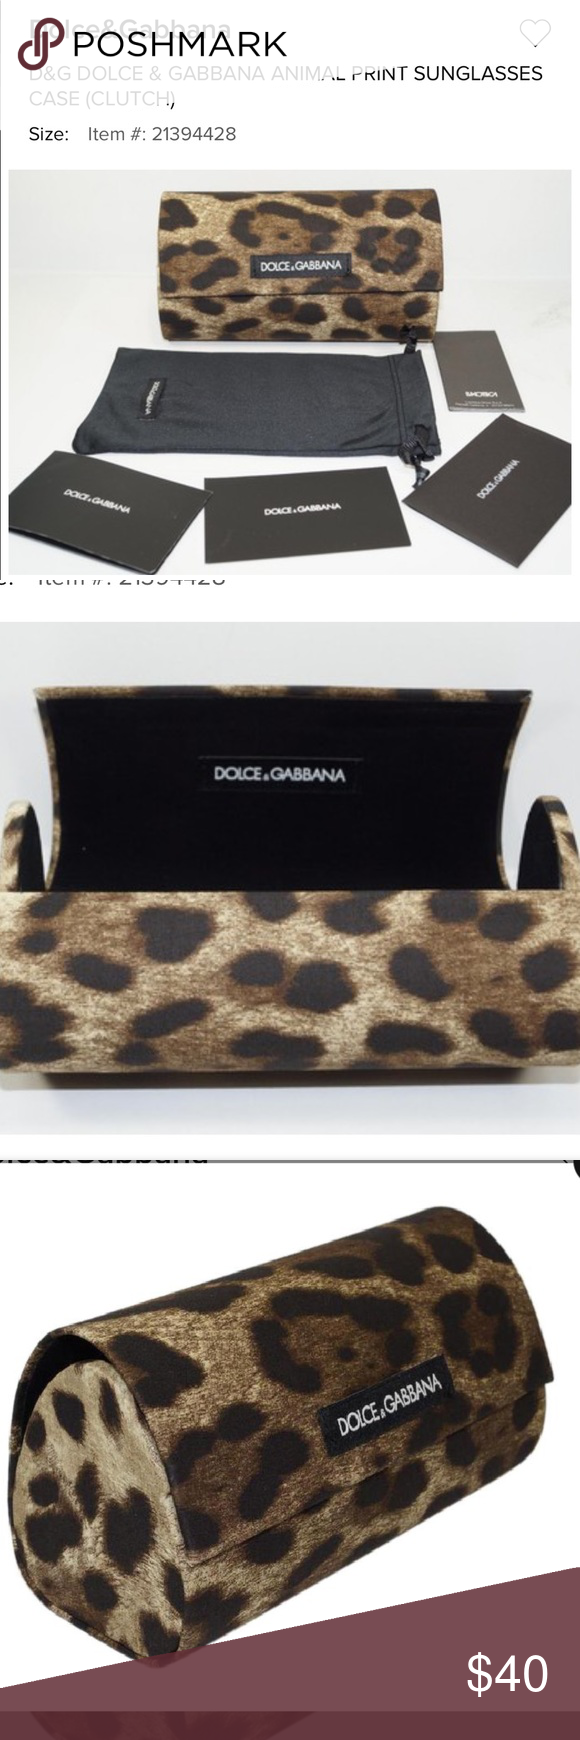 93345b5b00d5 Dolce   Gabbana Aunglasses Case and clutch Brand New 100% Authentic D G  DOLCE   GABBANA SUNGLASSES GLASSES CASE -BEAUTIFUL! Animal Print Hard Case  Magnetic ...